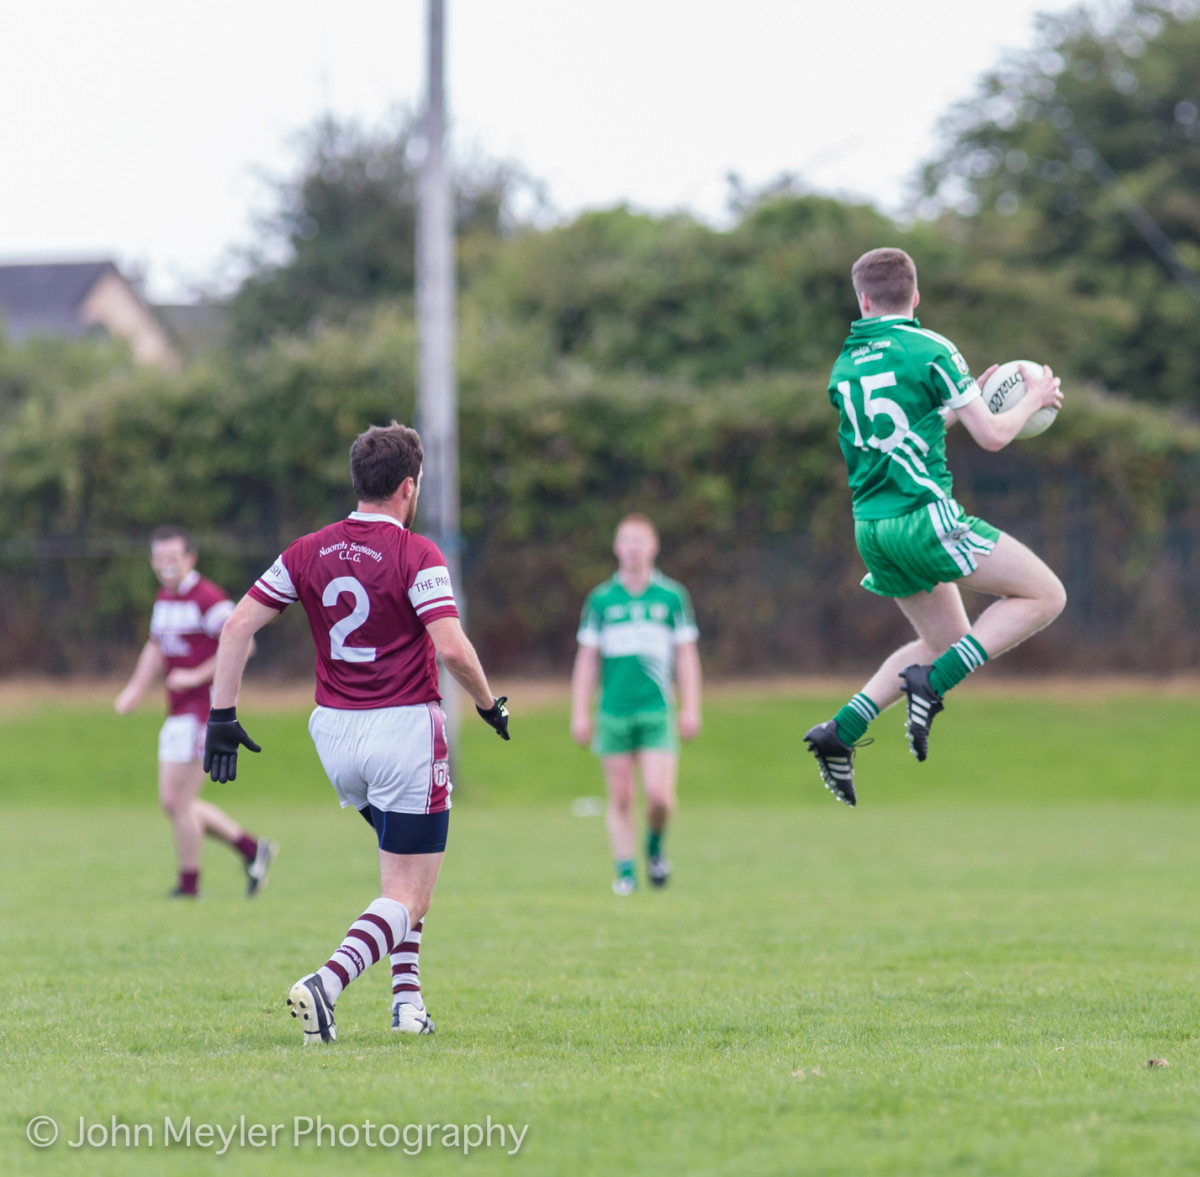 Brian O'Connor leaps to the ball ahead of Phillip Ryan. Picture: John Meyler